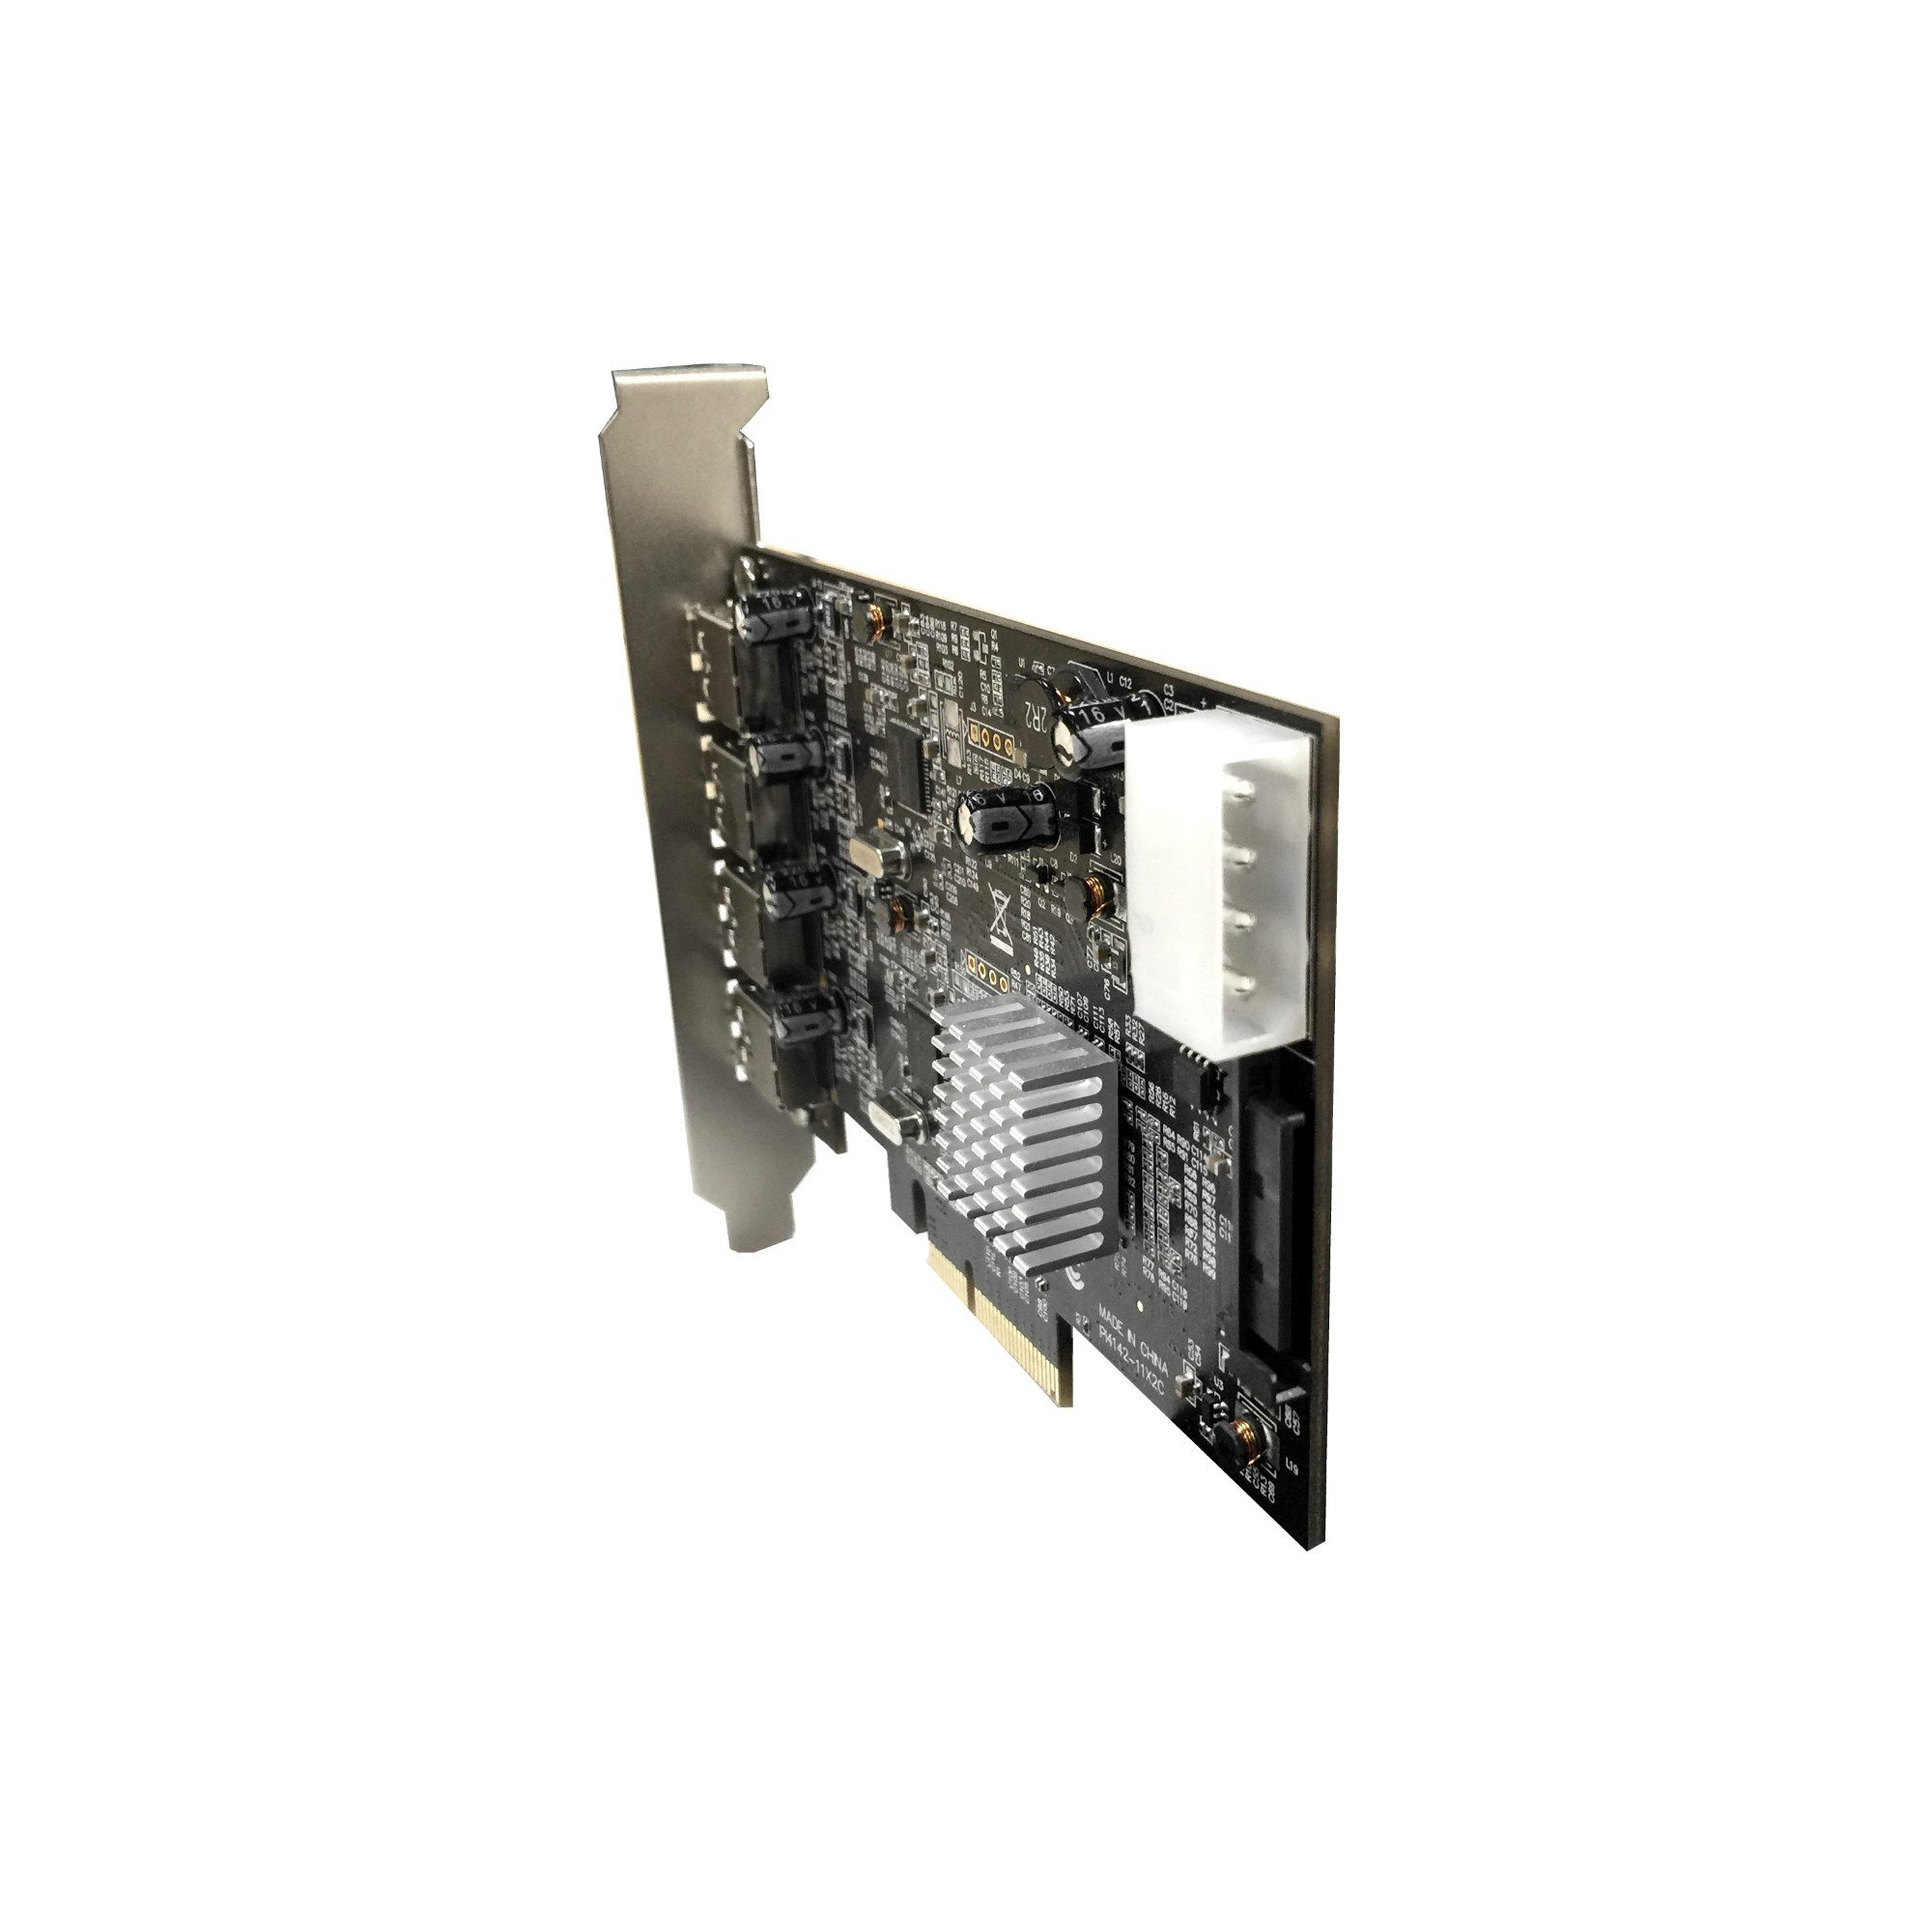 Vantec 4-Port Dedicated 10Gbps USB 3.1 Gen 2 PCIe Host Card with Dual Controller For PCIe x4/x8/x16 slot Black/Silver Black/Silver (UGT-PCE470-2C) by Vantec (Image #8)